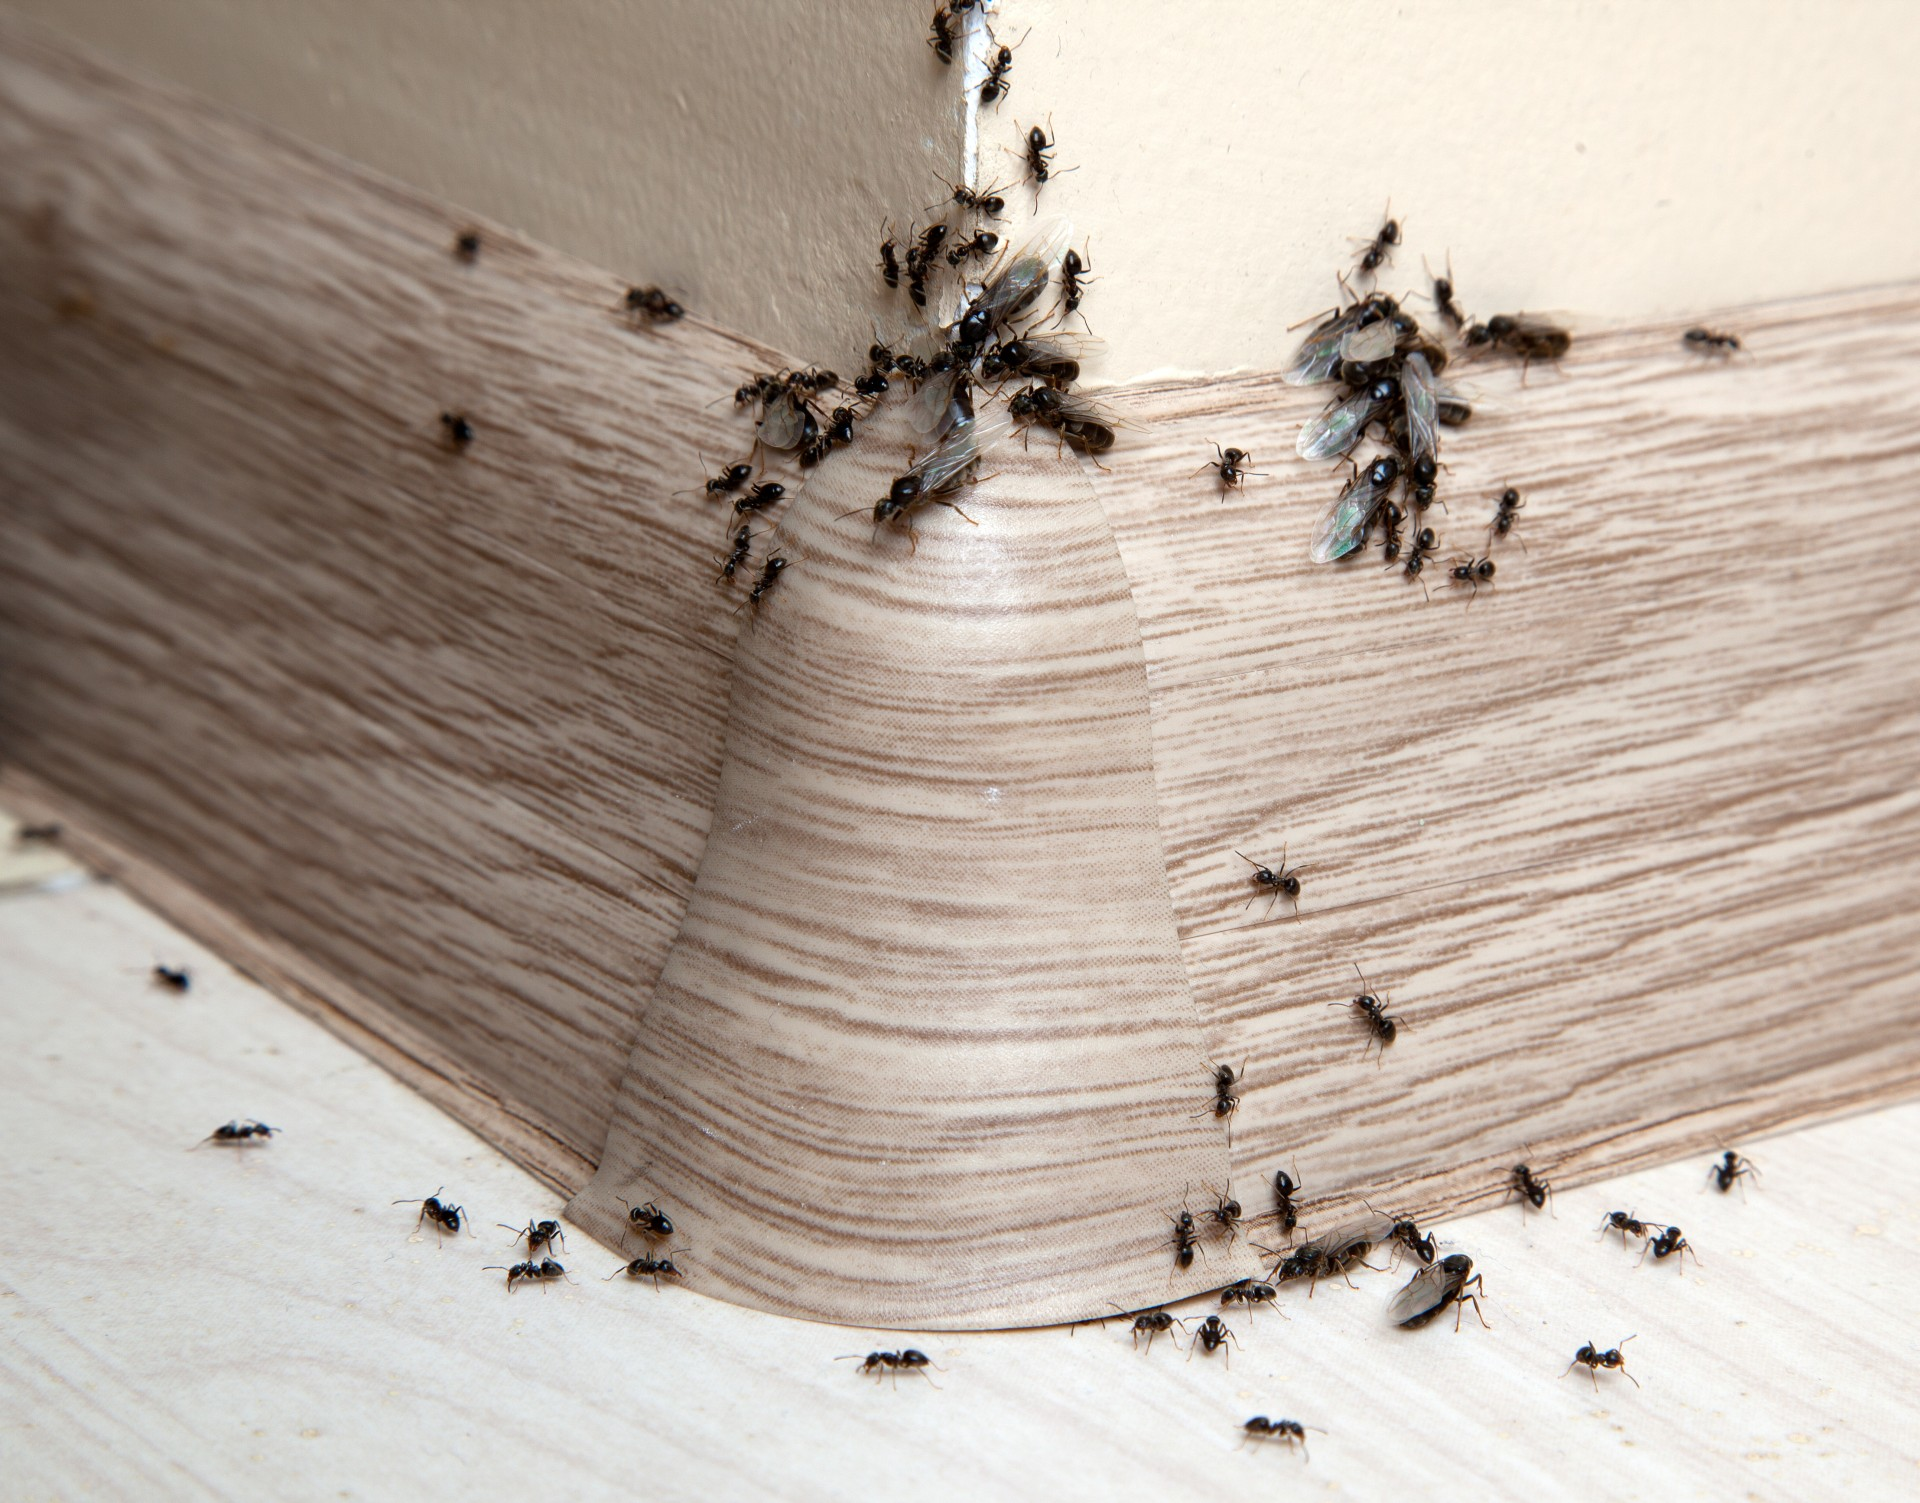 Ant Infestation, Pest Control in Shoreditch, E2. Call Now 020 8166 9746